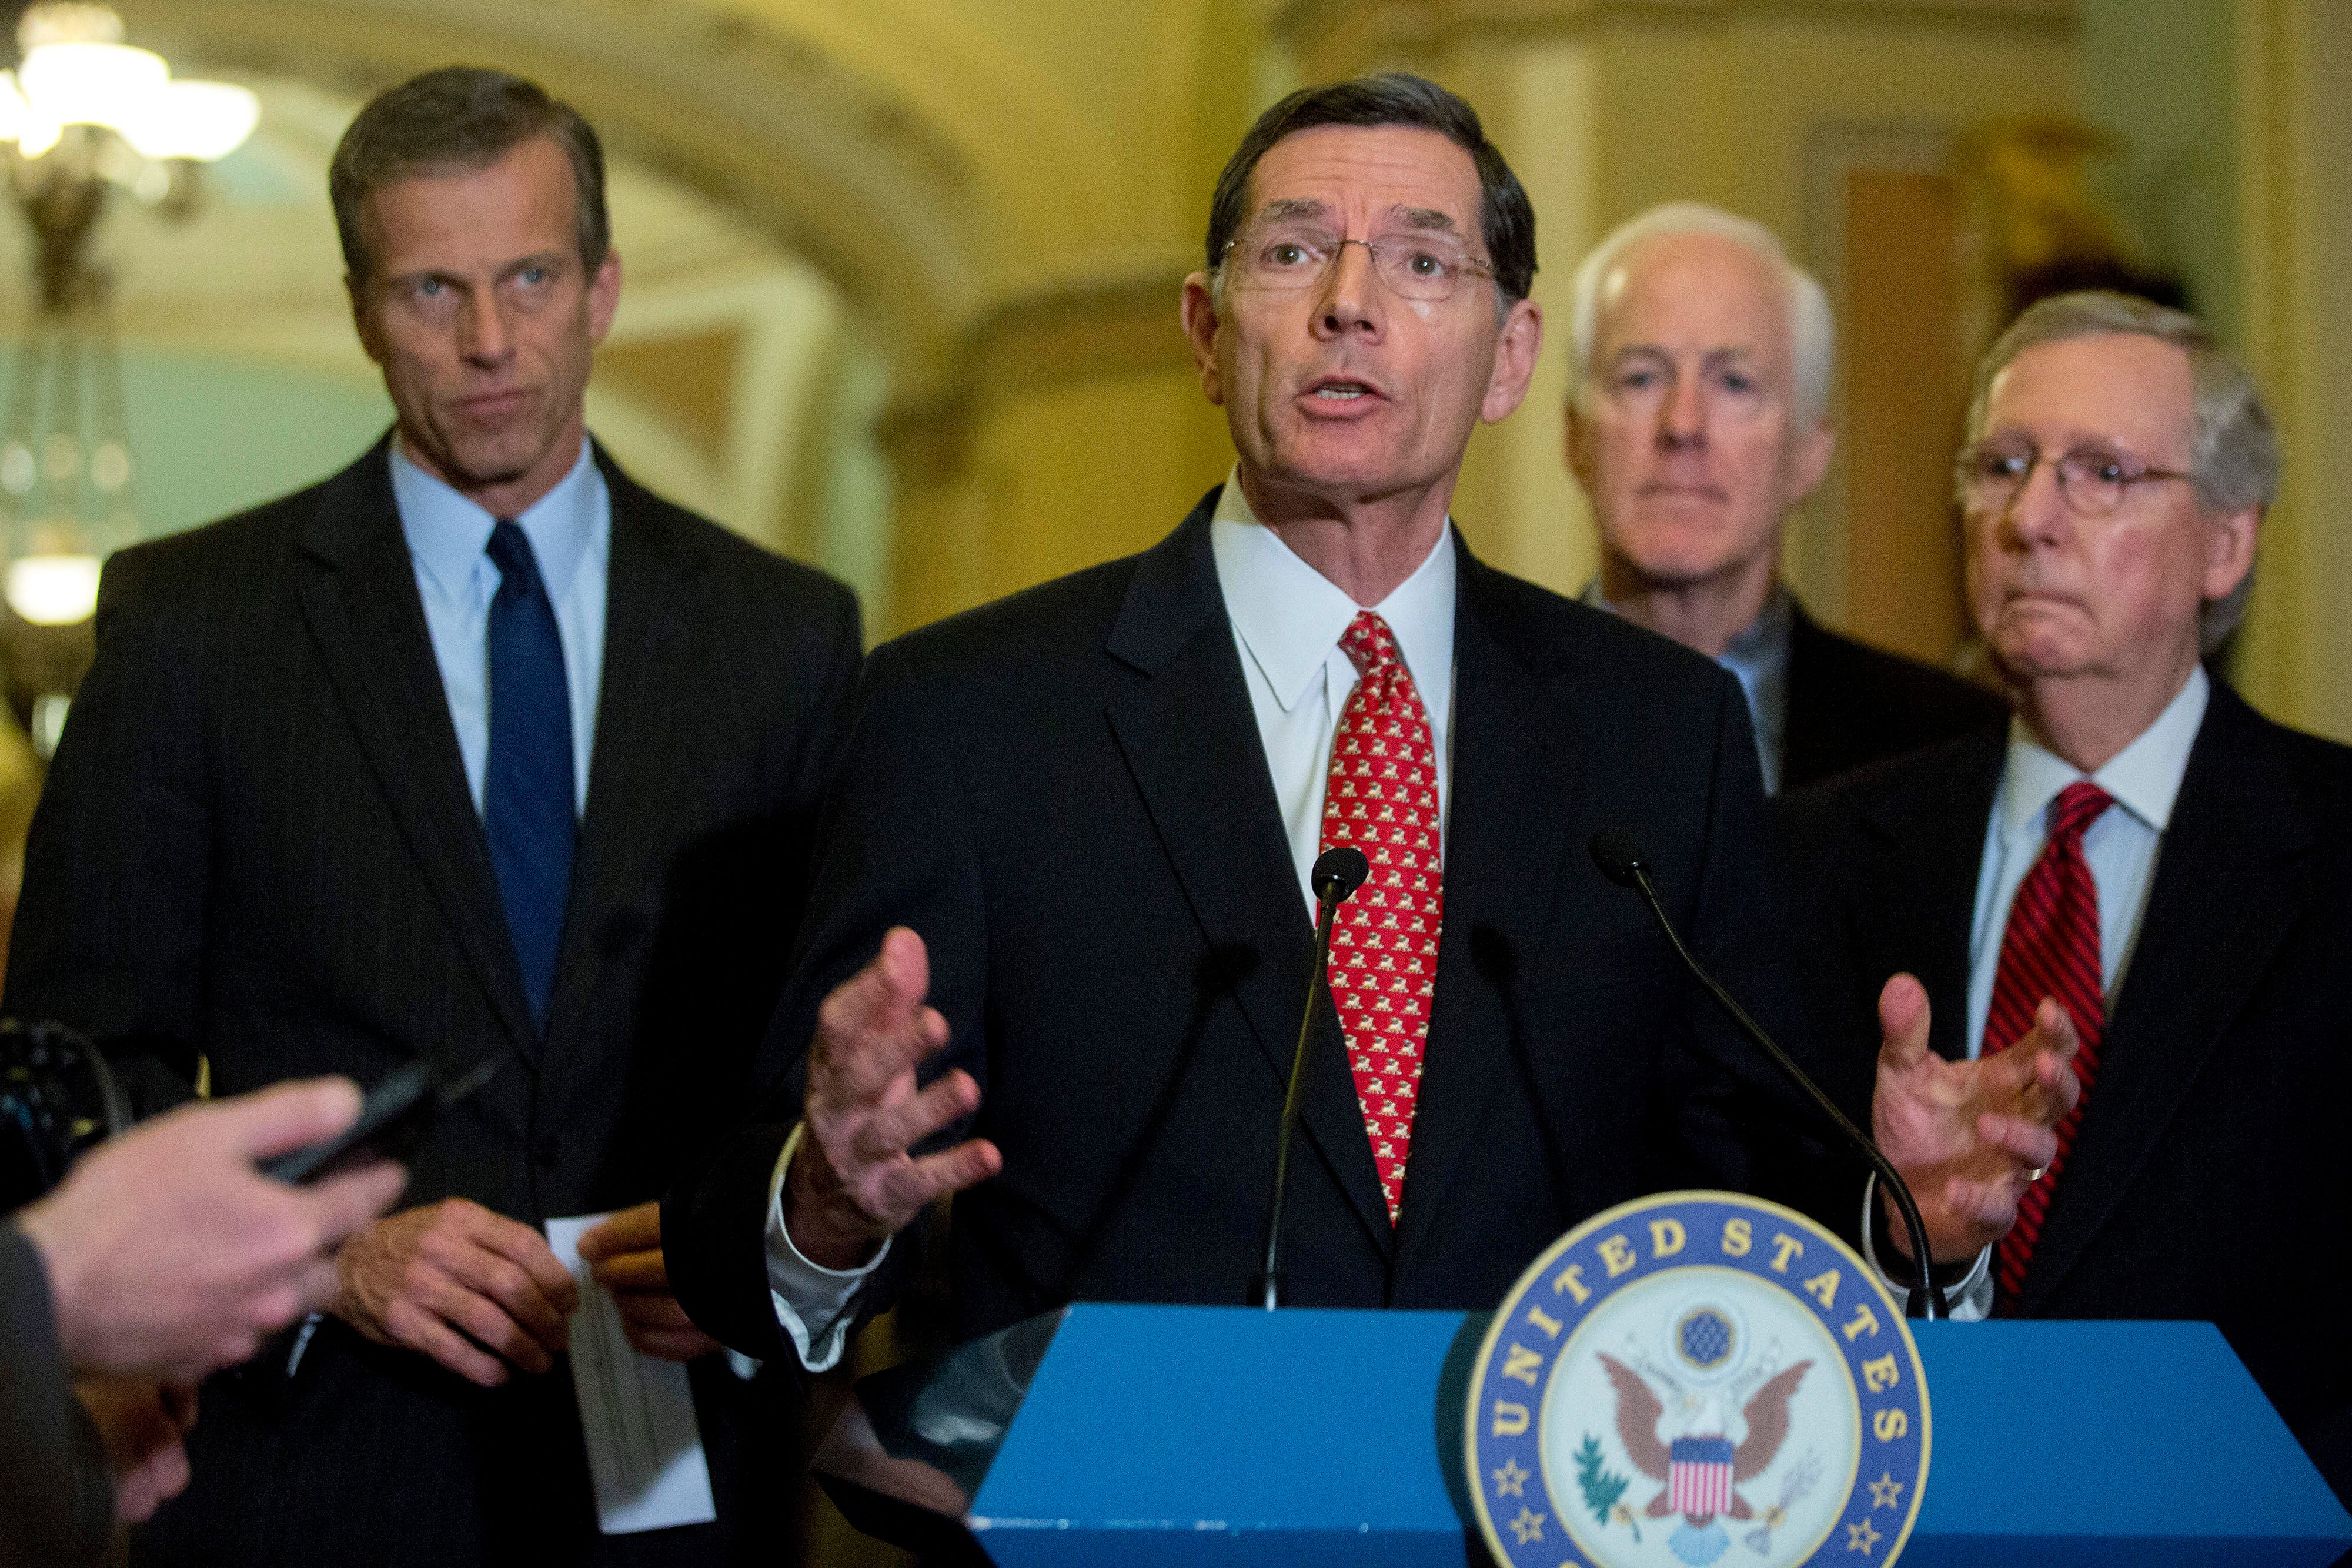 Senator John Barrasso, a Republican from Wyoming, center, speaks during a news conference following a Senate luncheon at the U.S. Capitol with John Thune, a Republican from South Dakota, from left, Barrasso, John Thune, a Republican from South Dakota, and Senate Majority Leader Mitch McConnell, a Republican from Kentucky, in Washington, D.C., U.S., on Tuesday, Feb. 24, 2015. Days before funding for the Department of Homeland Security expires, Senate Majority Leader Mitch McConnell is getting a mixed reaction to his plan to separate agency financing from opposition to President Barack Obama's immigration policies. Photographer: Andrew Harrer/Bloomberg via Getty Images